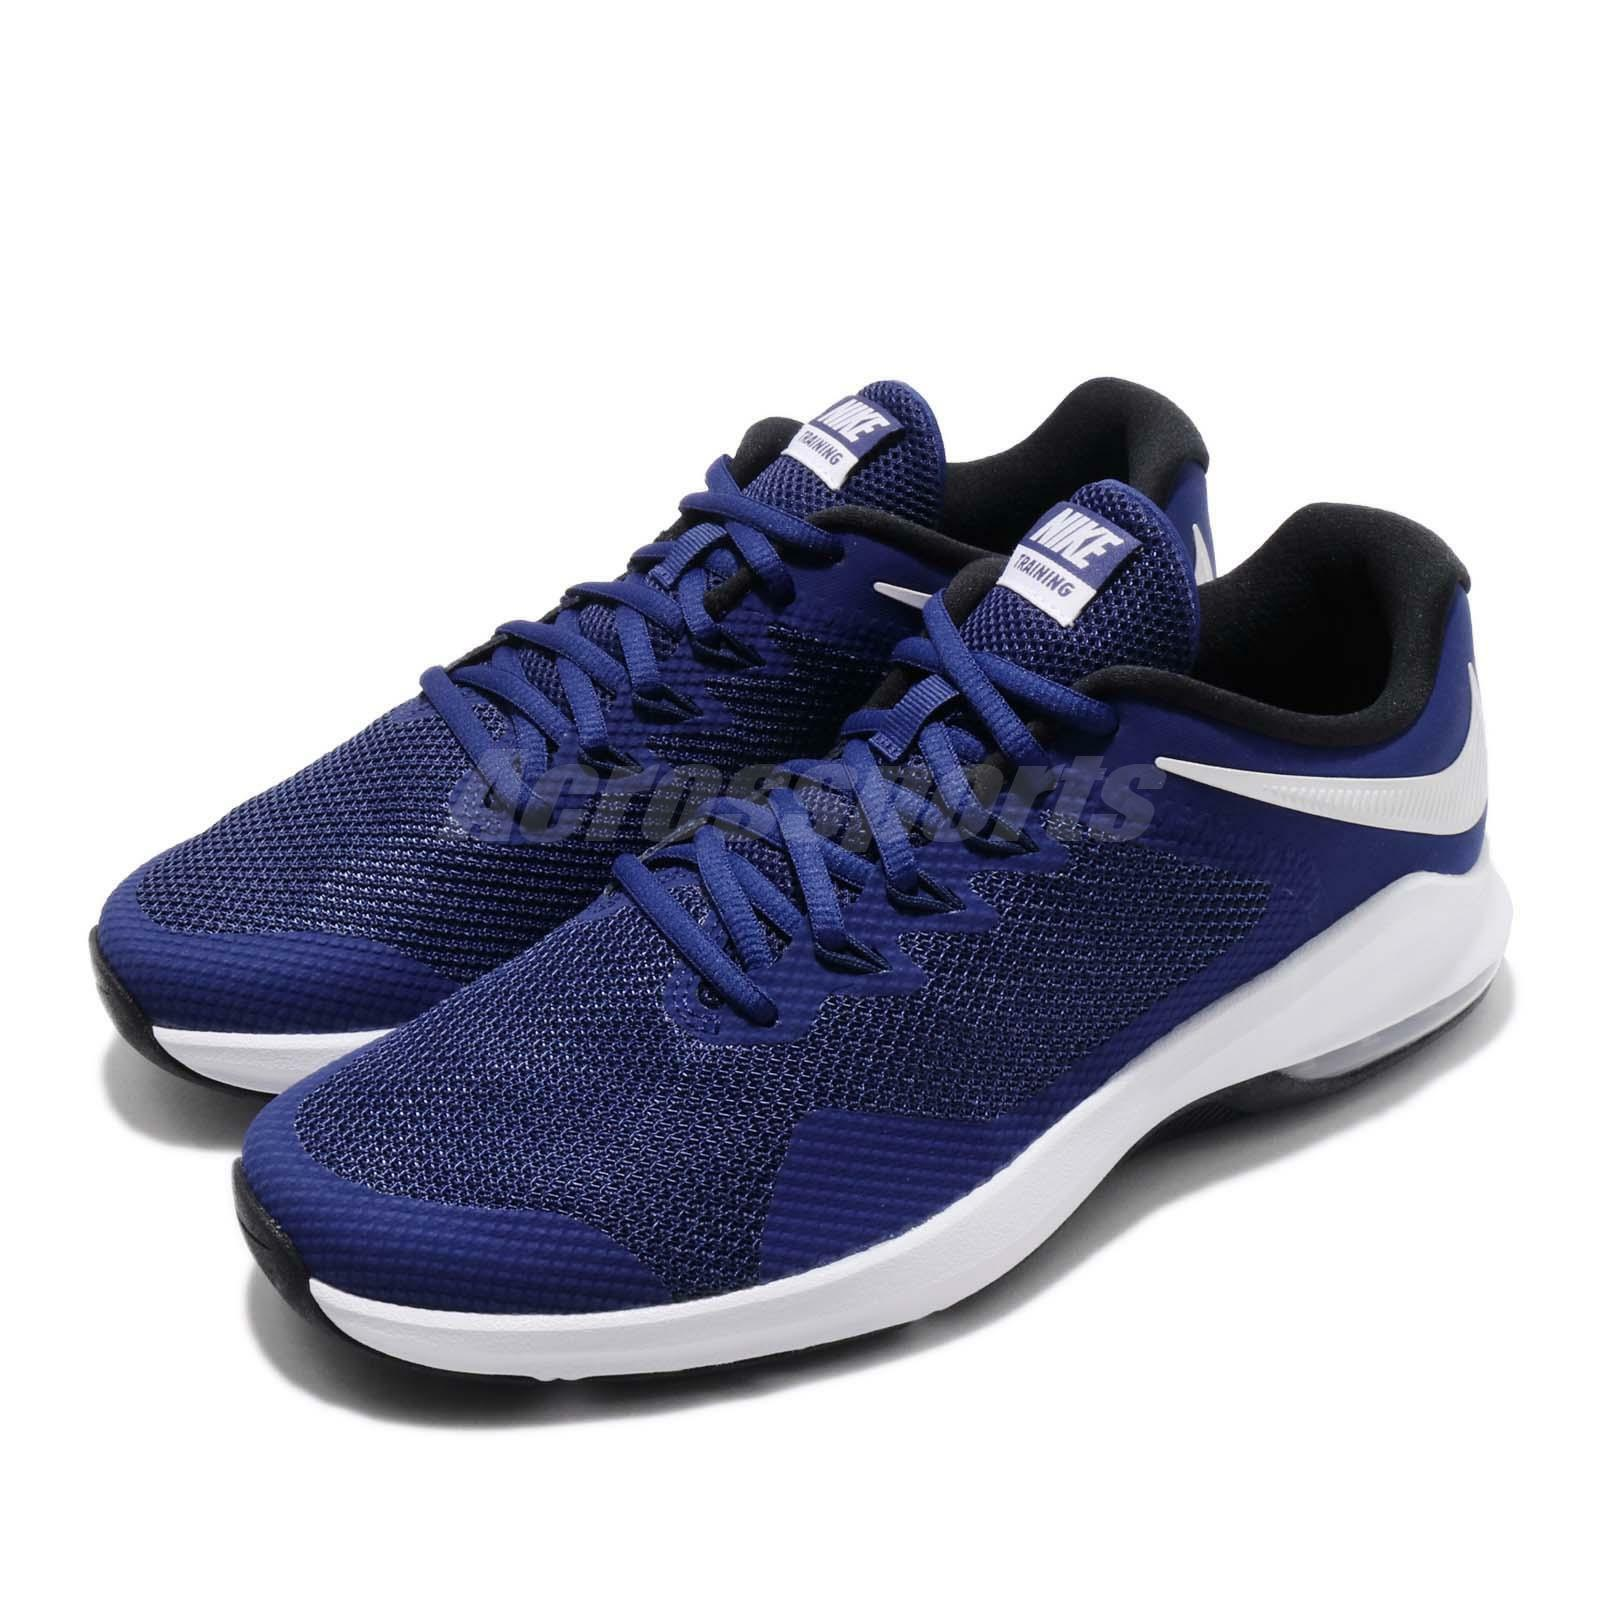 Nike Air Max Alpha Trainer Deep Royal blueee White Men Training shoes AA7060-401